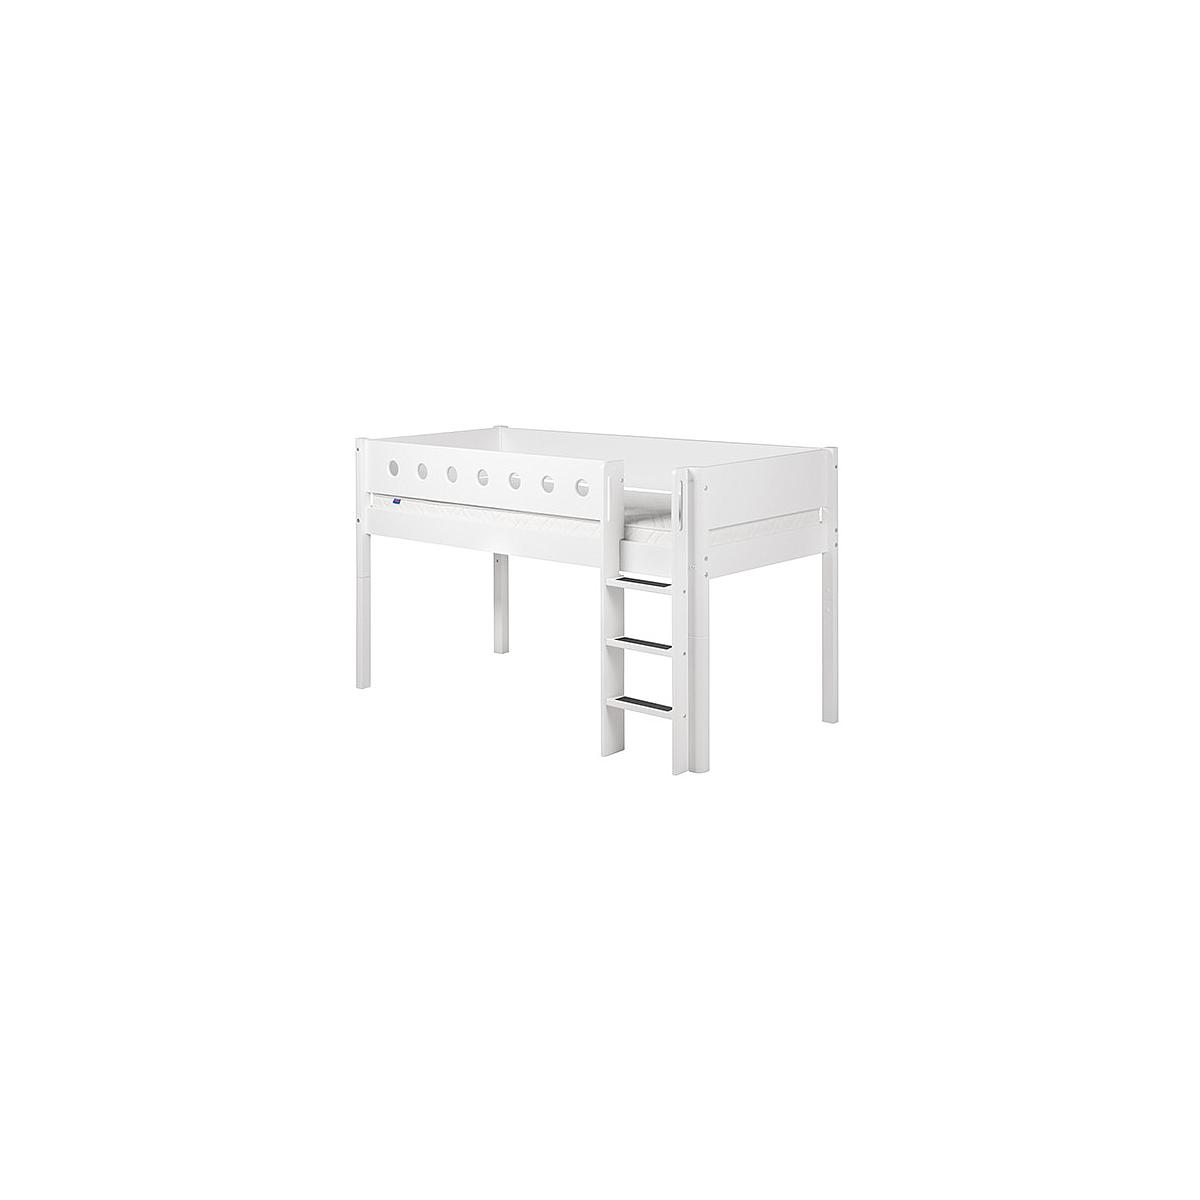 Cama media alta 90x190 WHITE Flexa escalera recta barrera y patas blancas